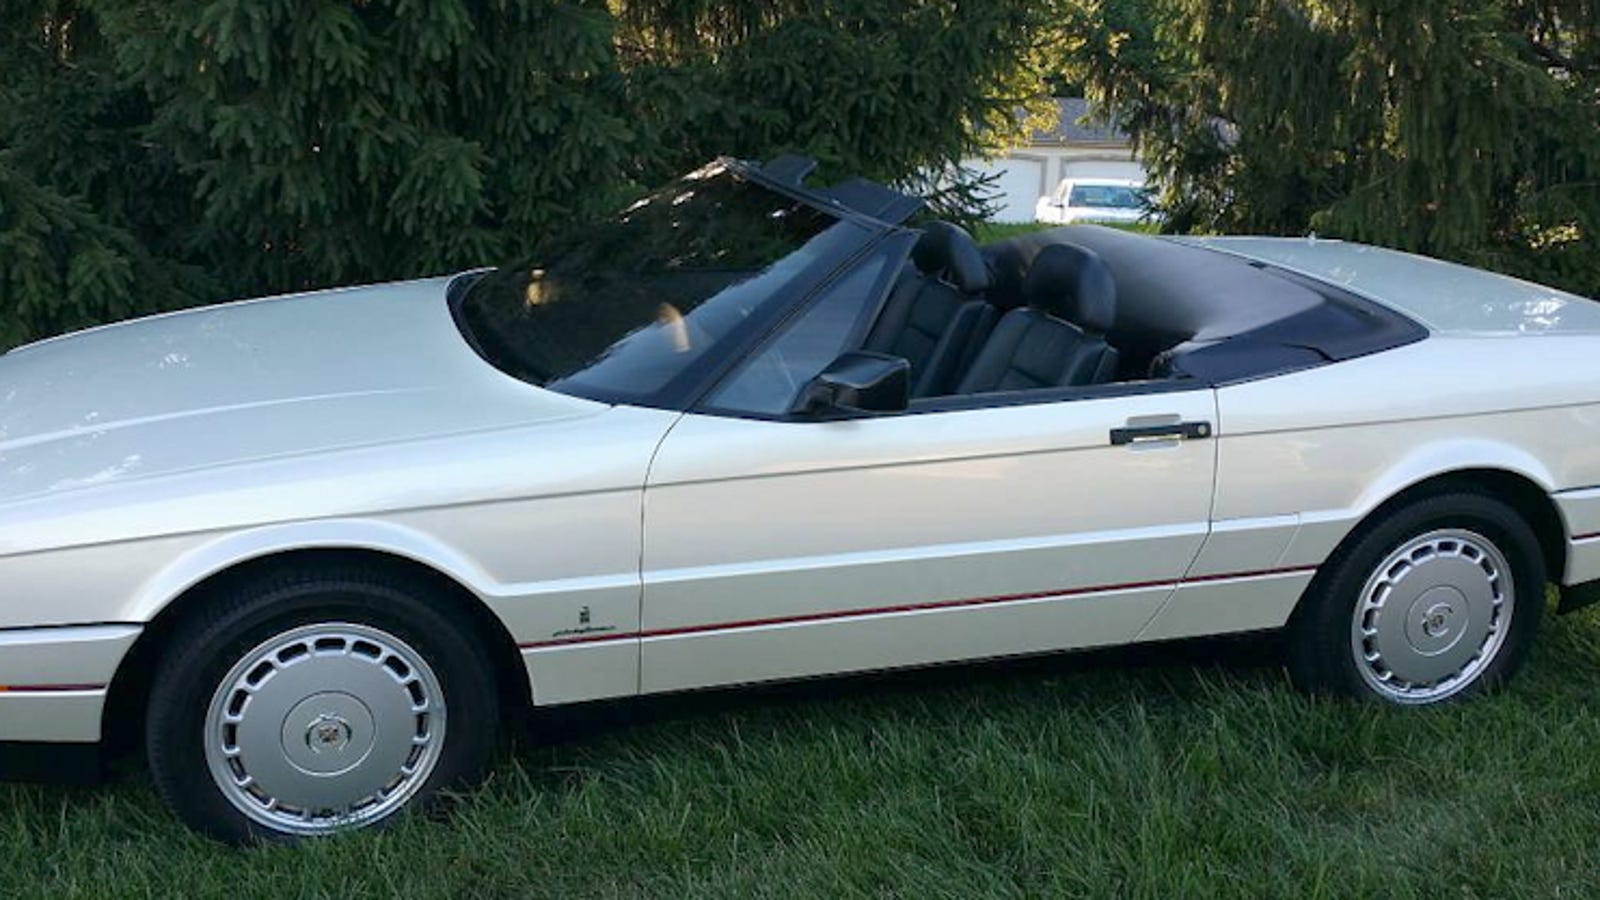 For 8900 This Low Mileage 1992 Cadillac Allante Could Be An Unfulfilled Dream Fulfilled